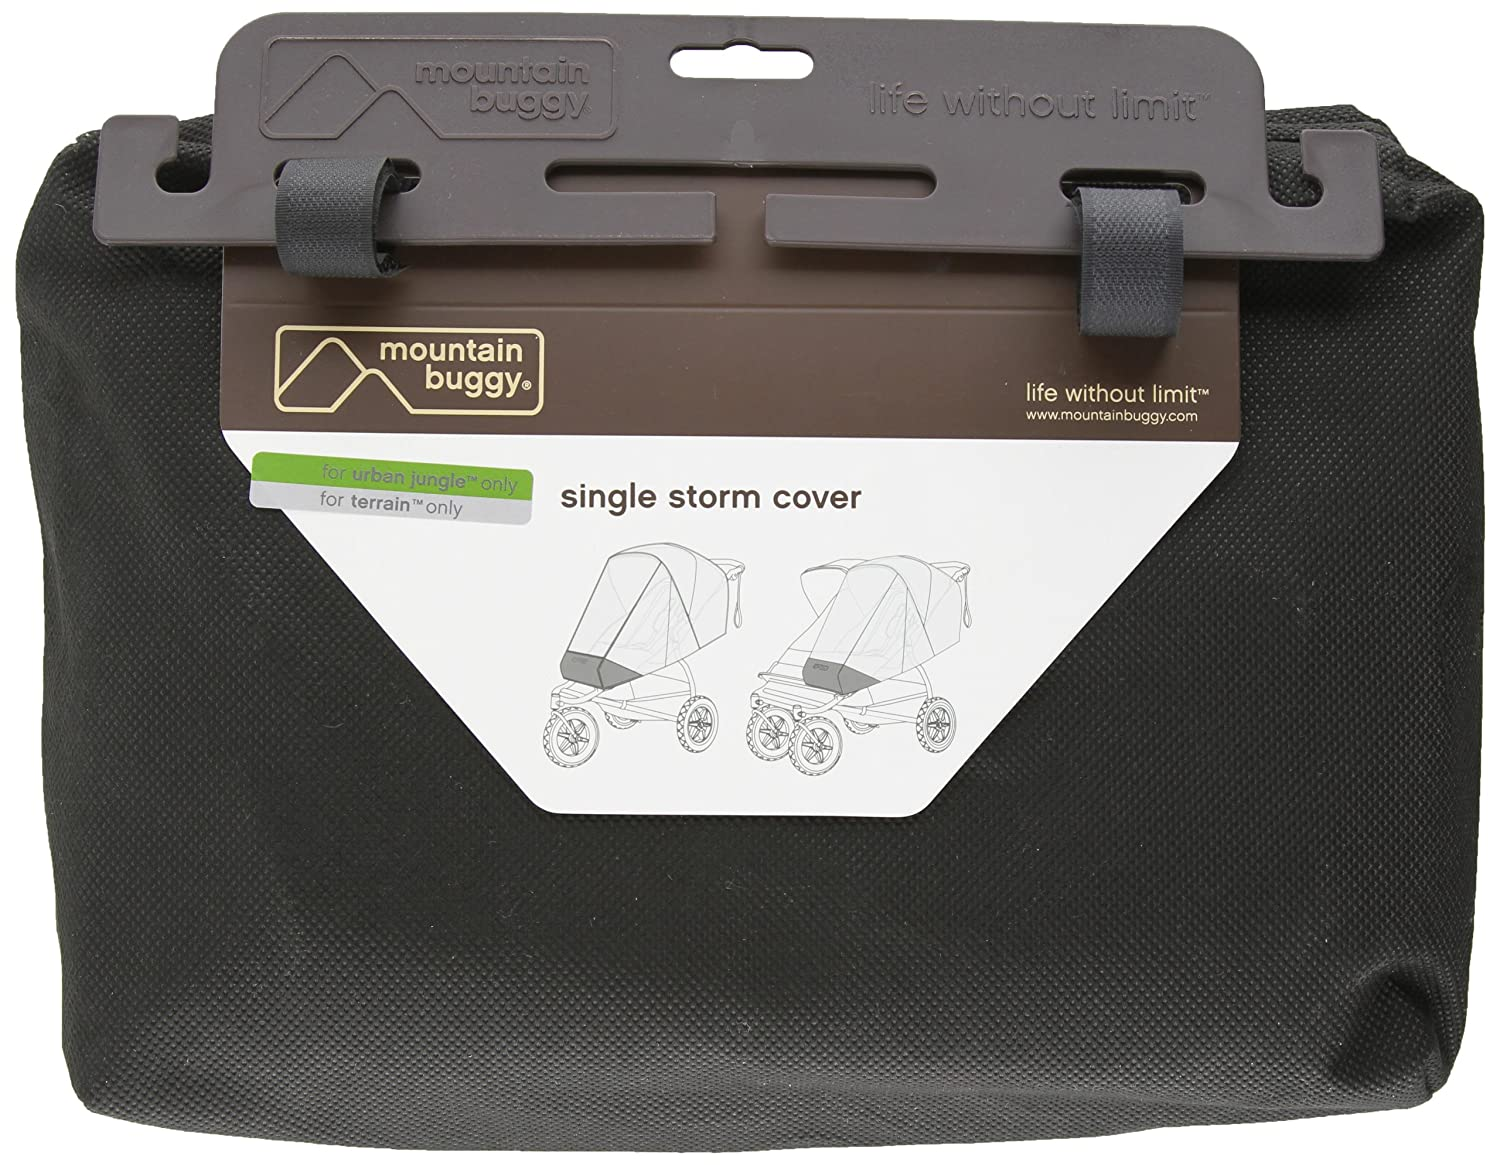 replacement raincover to fit Mountain Buggy Terrain